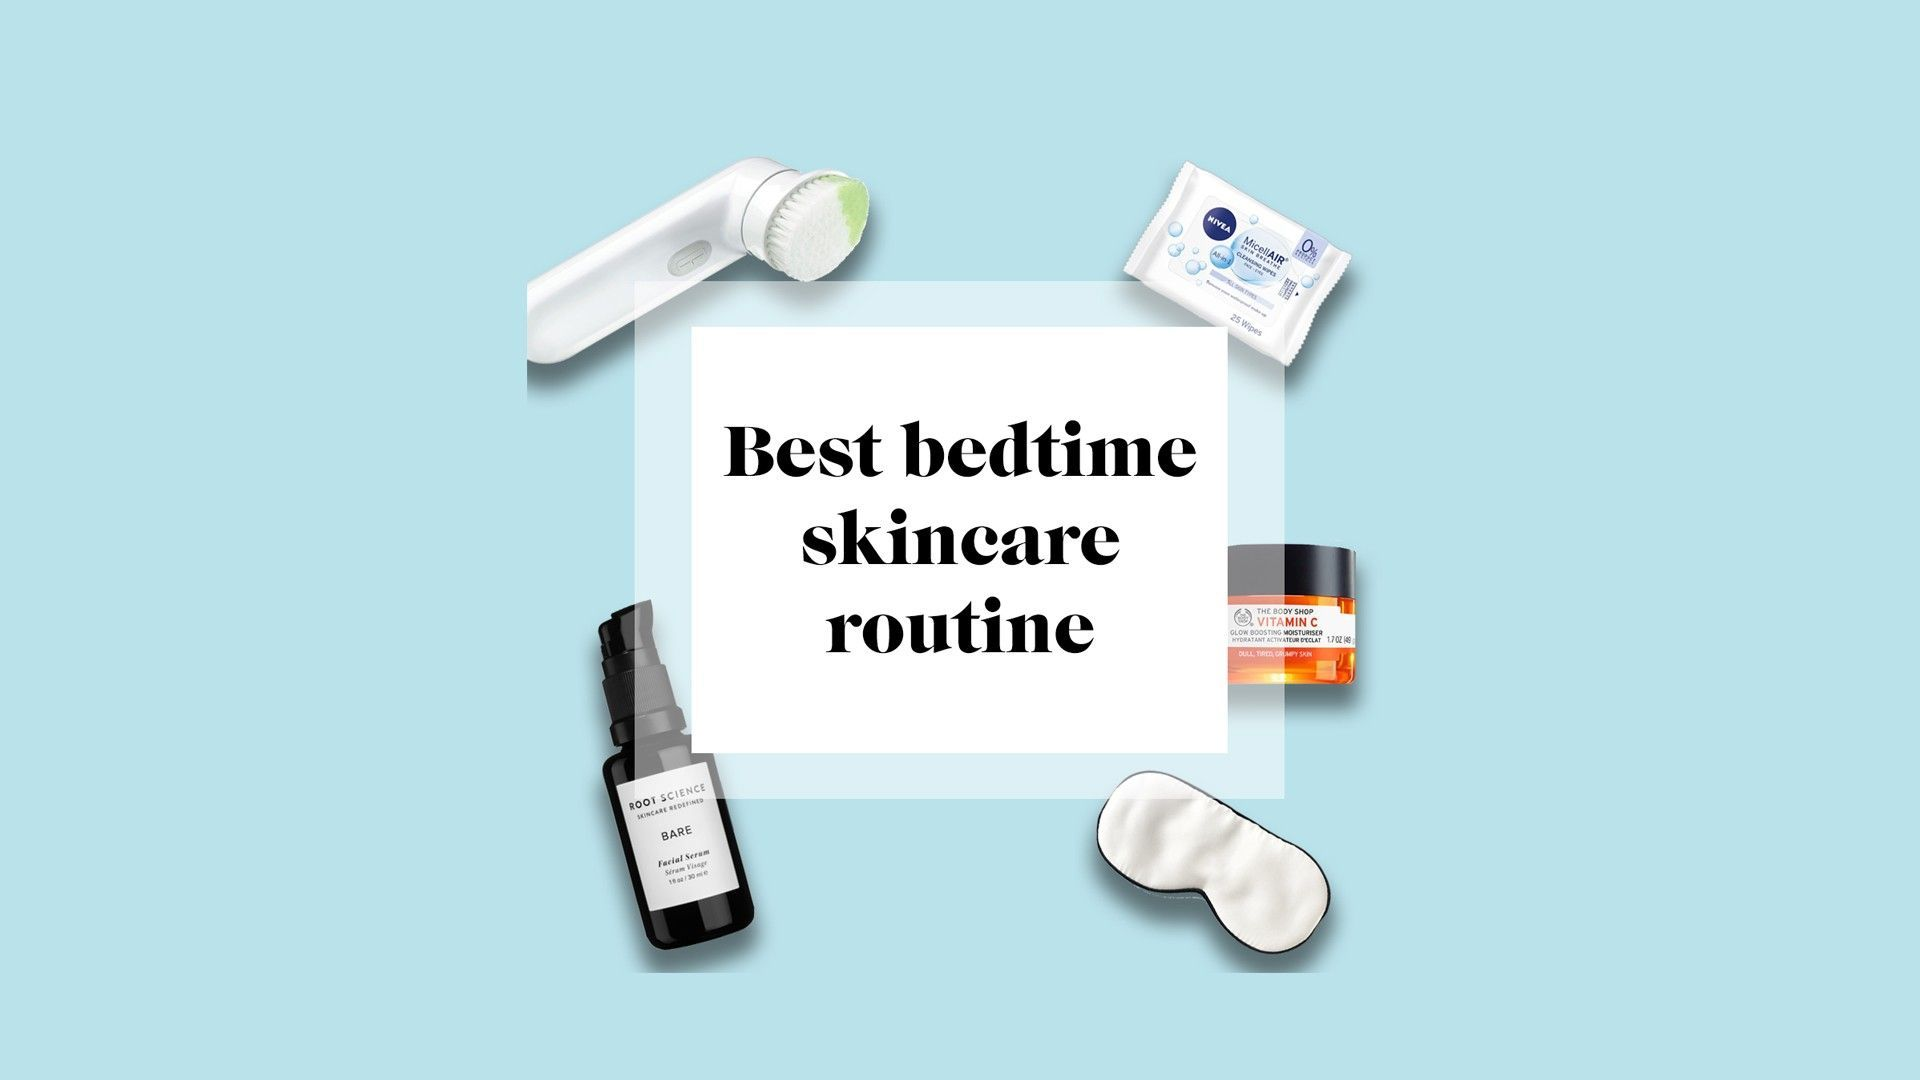 Best Bedtime Skincare Routine Blessman S Blog Skincare Blog What Is The Best Night Time Skinca Skin Care Routine Skincare Blog Night Skin Care Routine